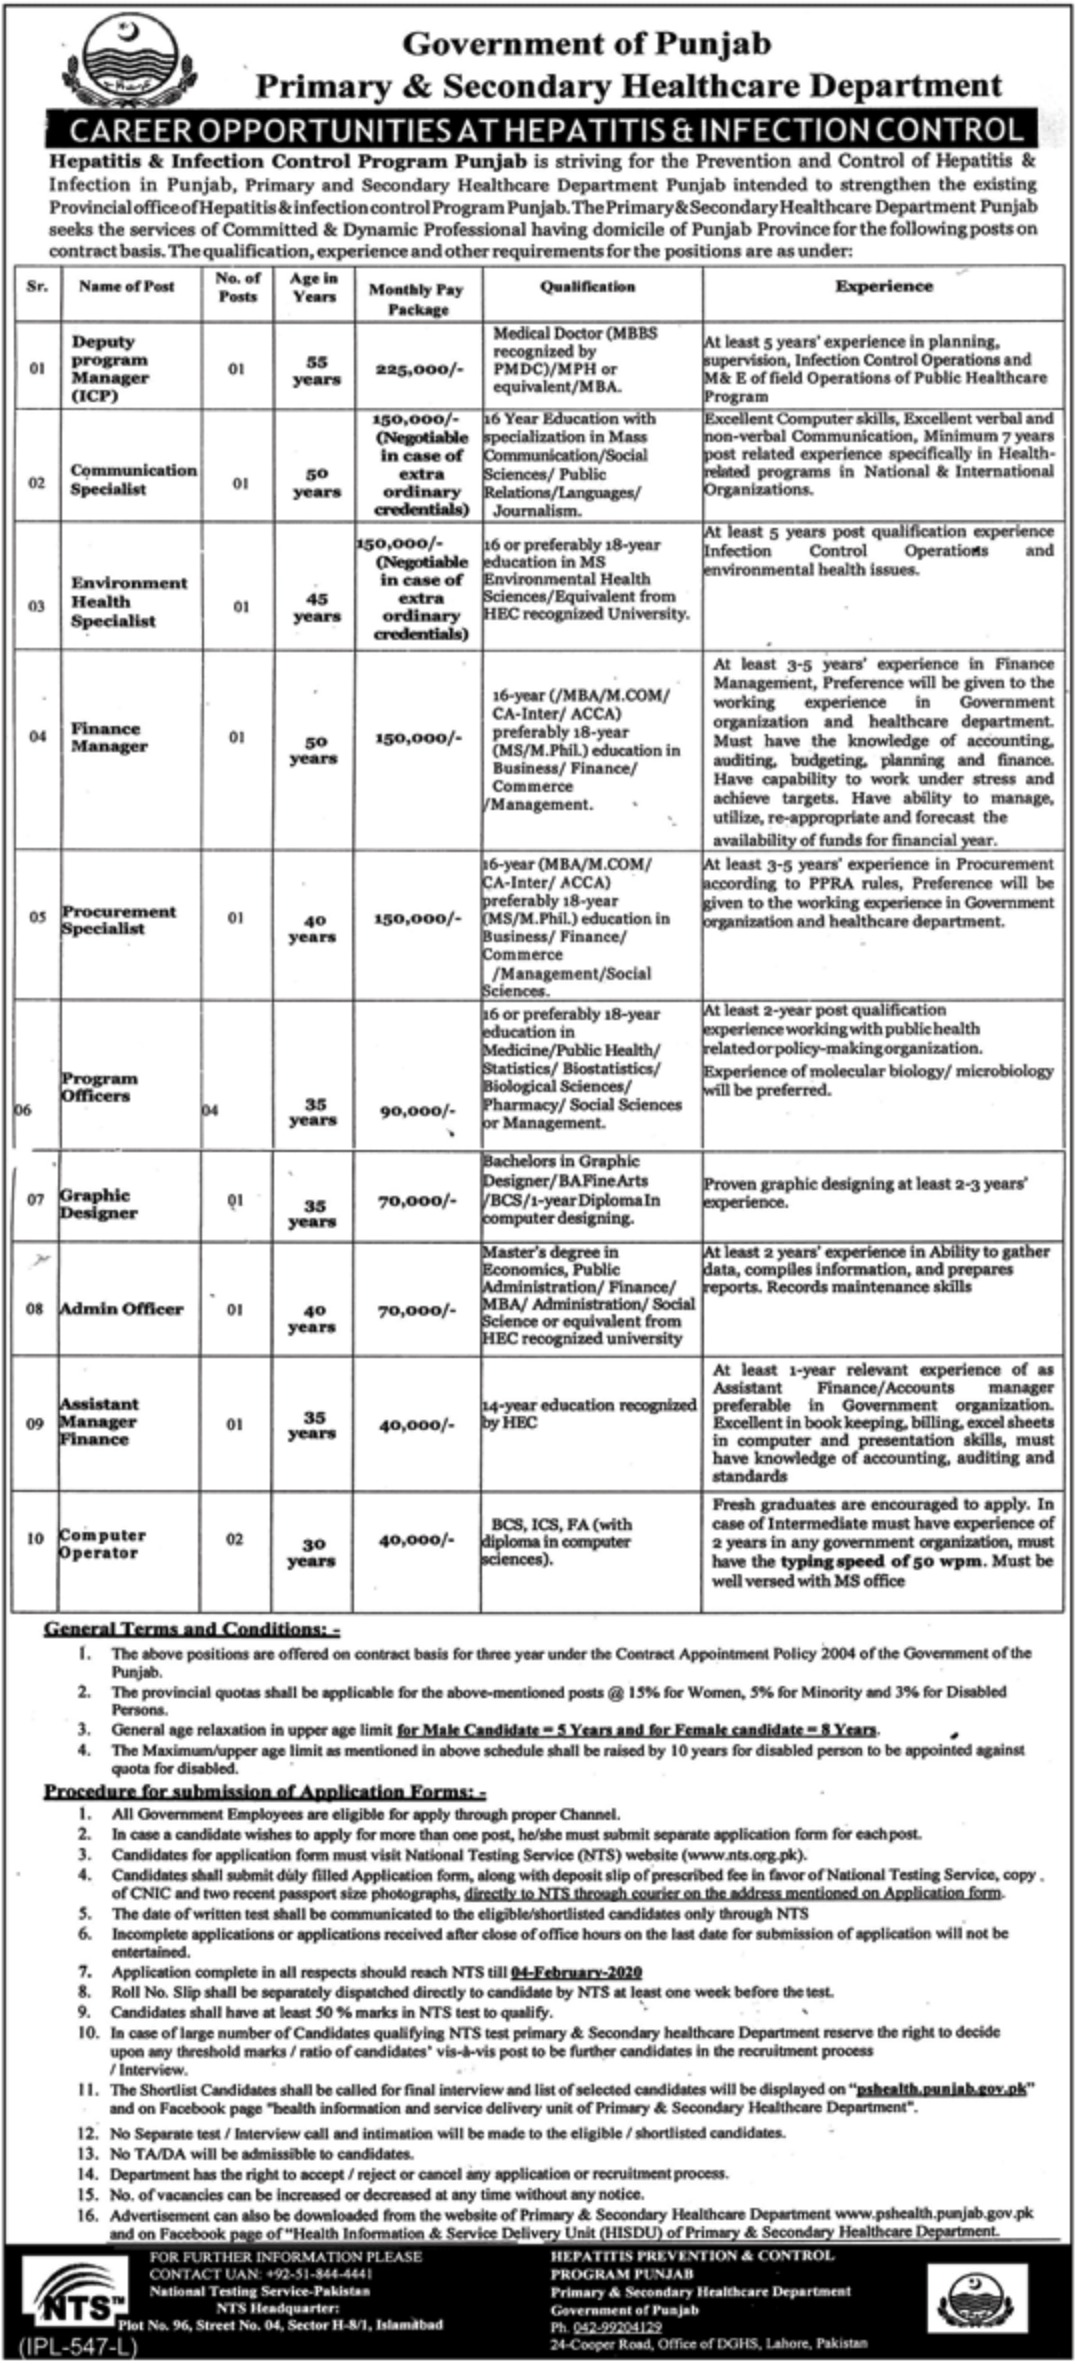 Punjab Primary and Secondary Healthcare Department Jobs 2020 NTS Test Preparation Online